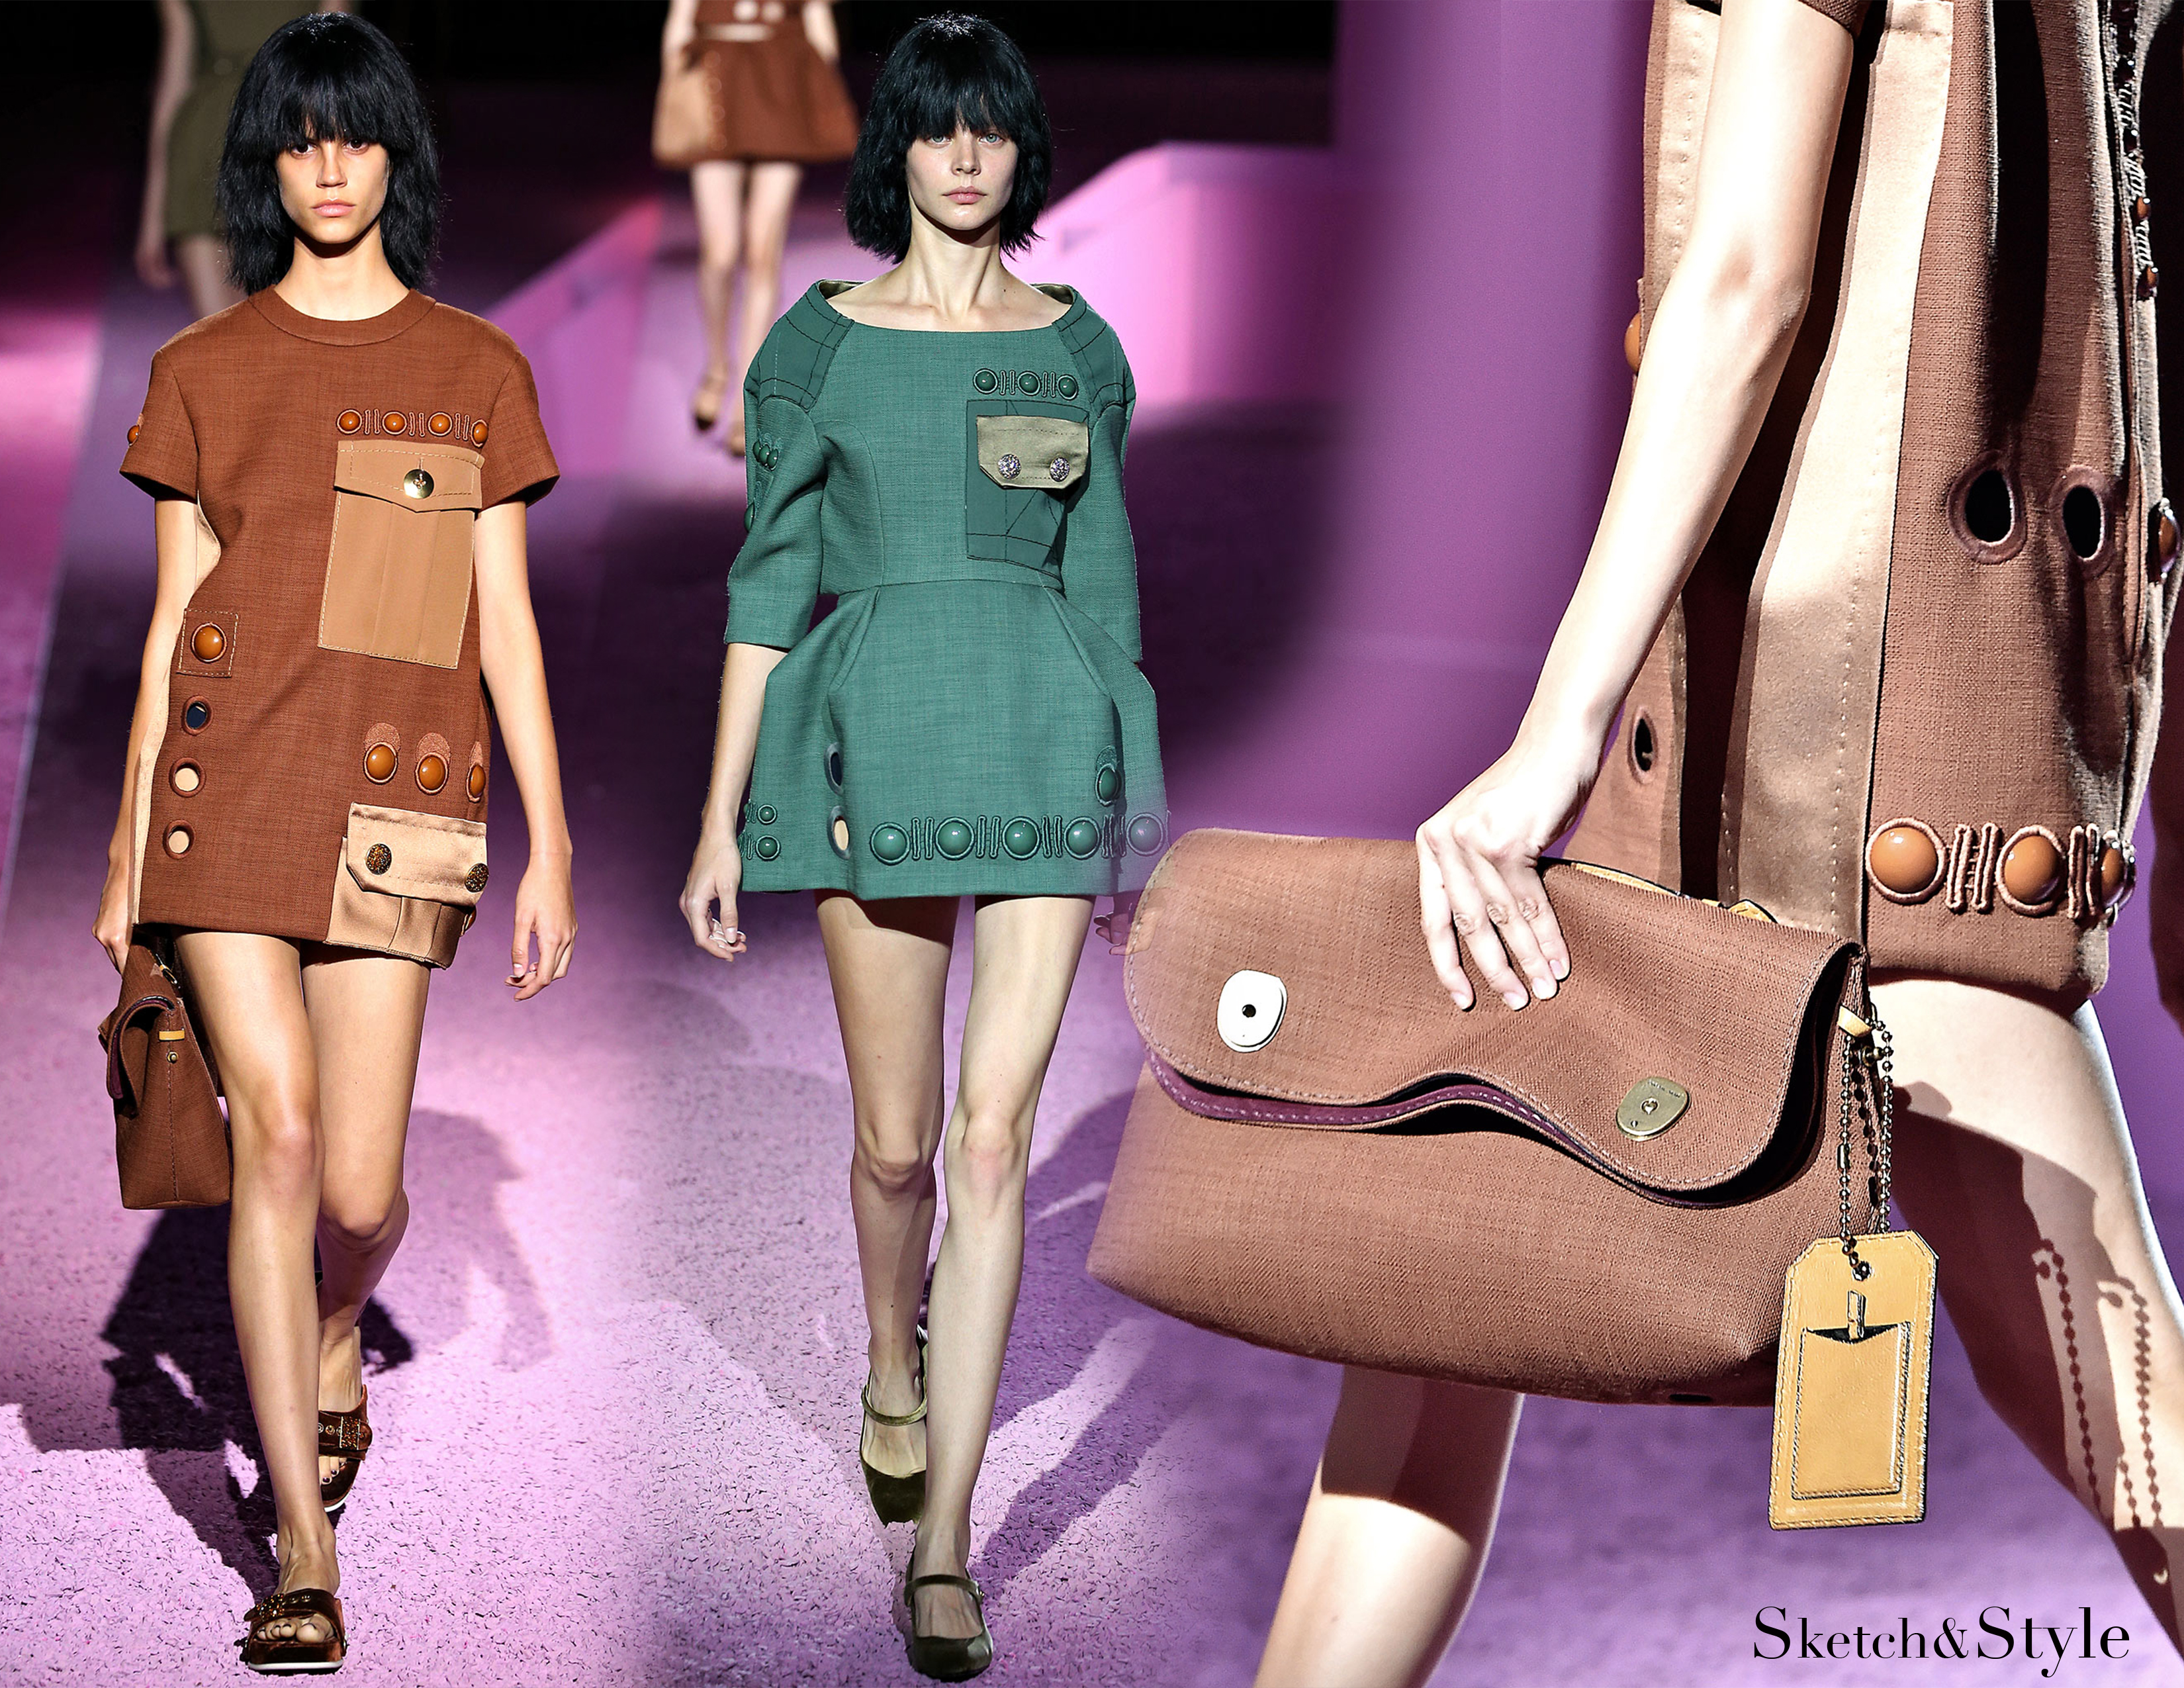 Marc Jacobs|Sketch&Style 3